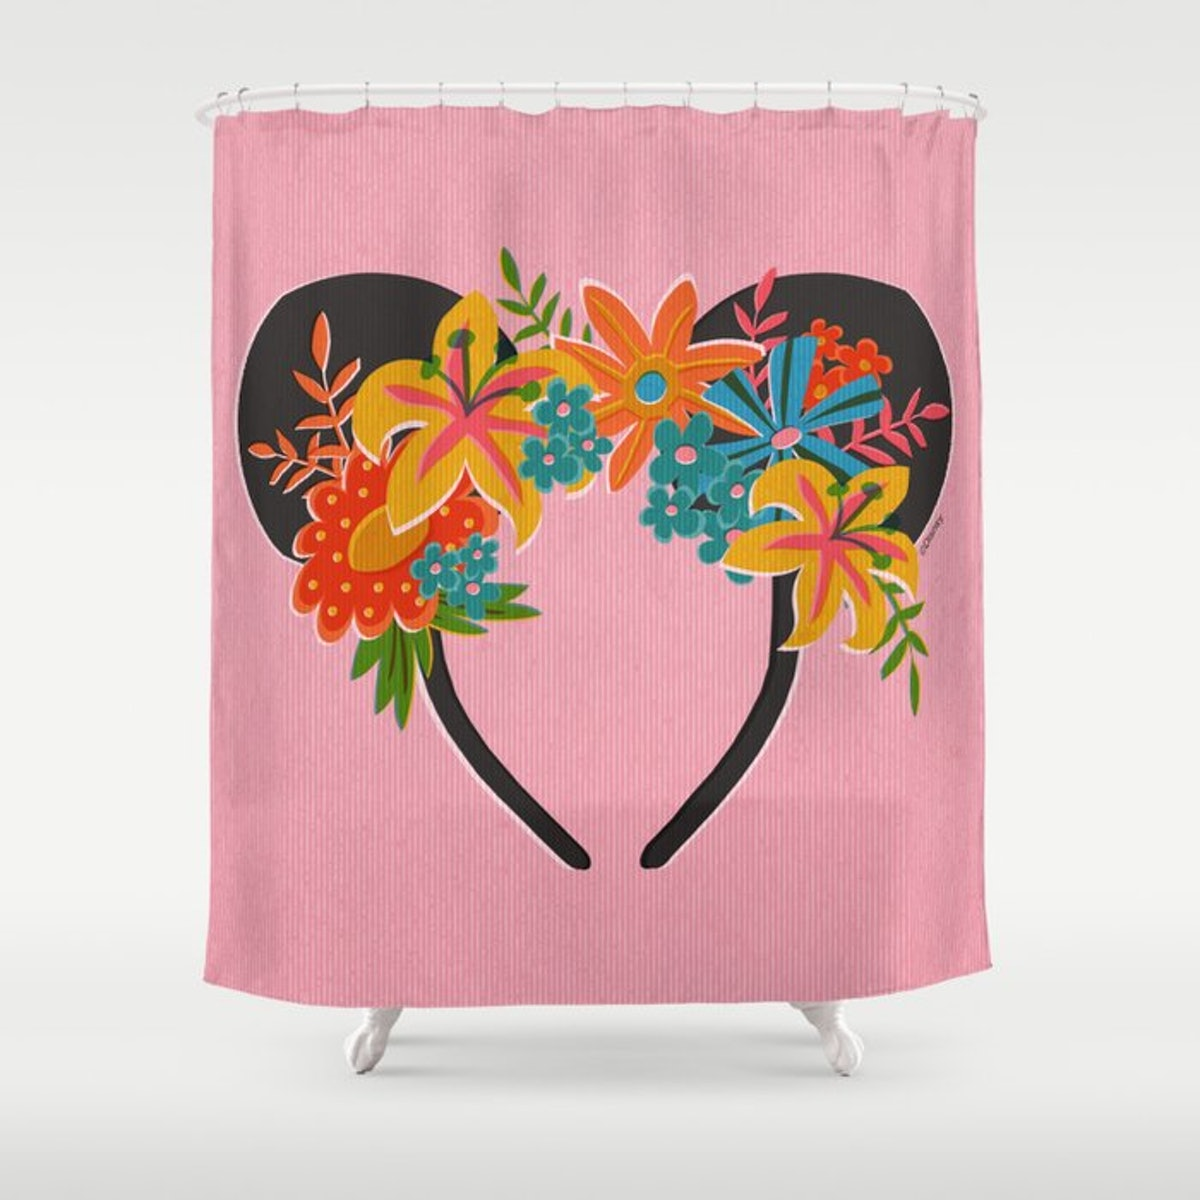 This Society6 x Disney Minnie Mouse Collection shower curtain can makeover your room.